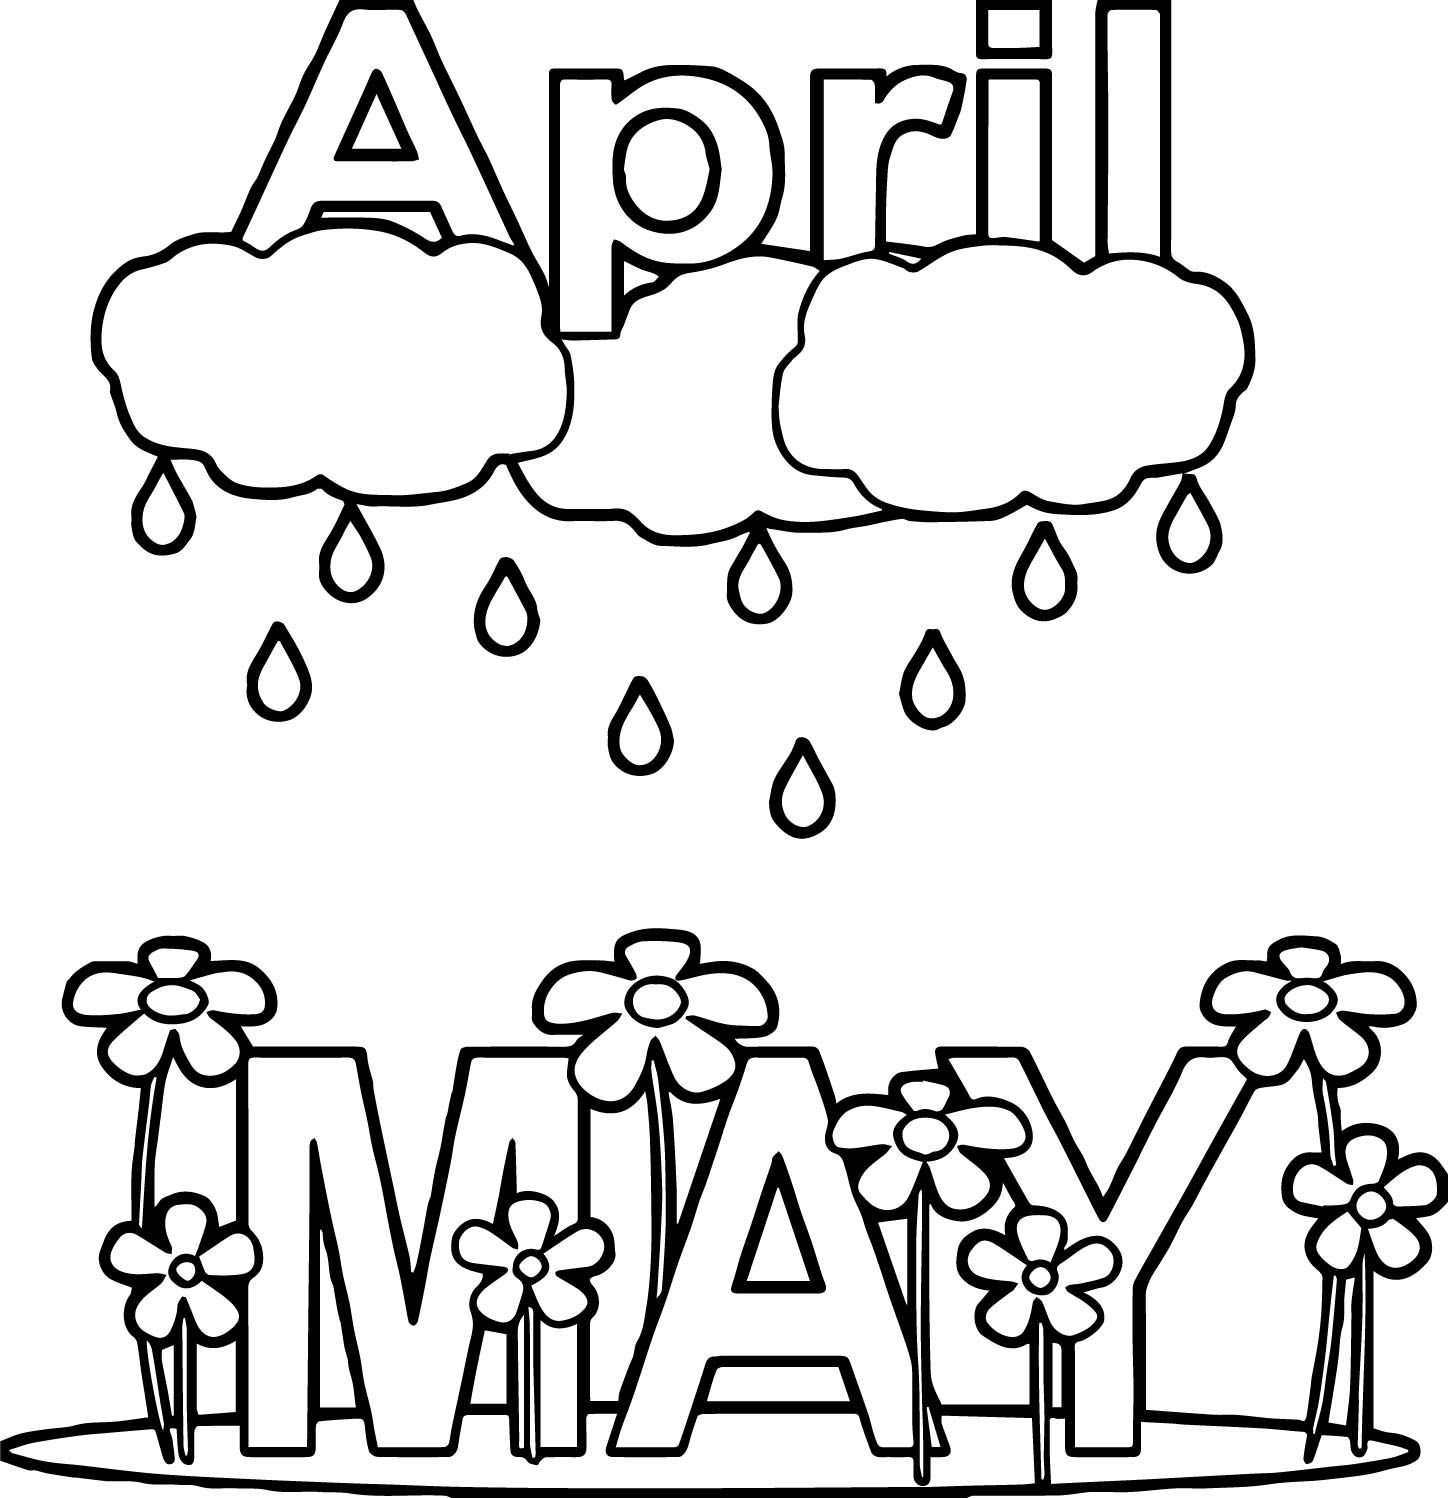 Nice April Shower May Rain Flower Coloring Page Printable Coloring Pages Flower Coloring Pages Spring Coloring Pages